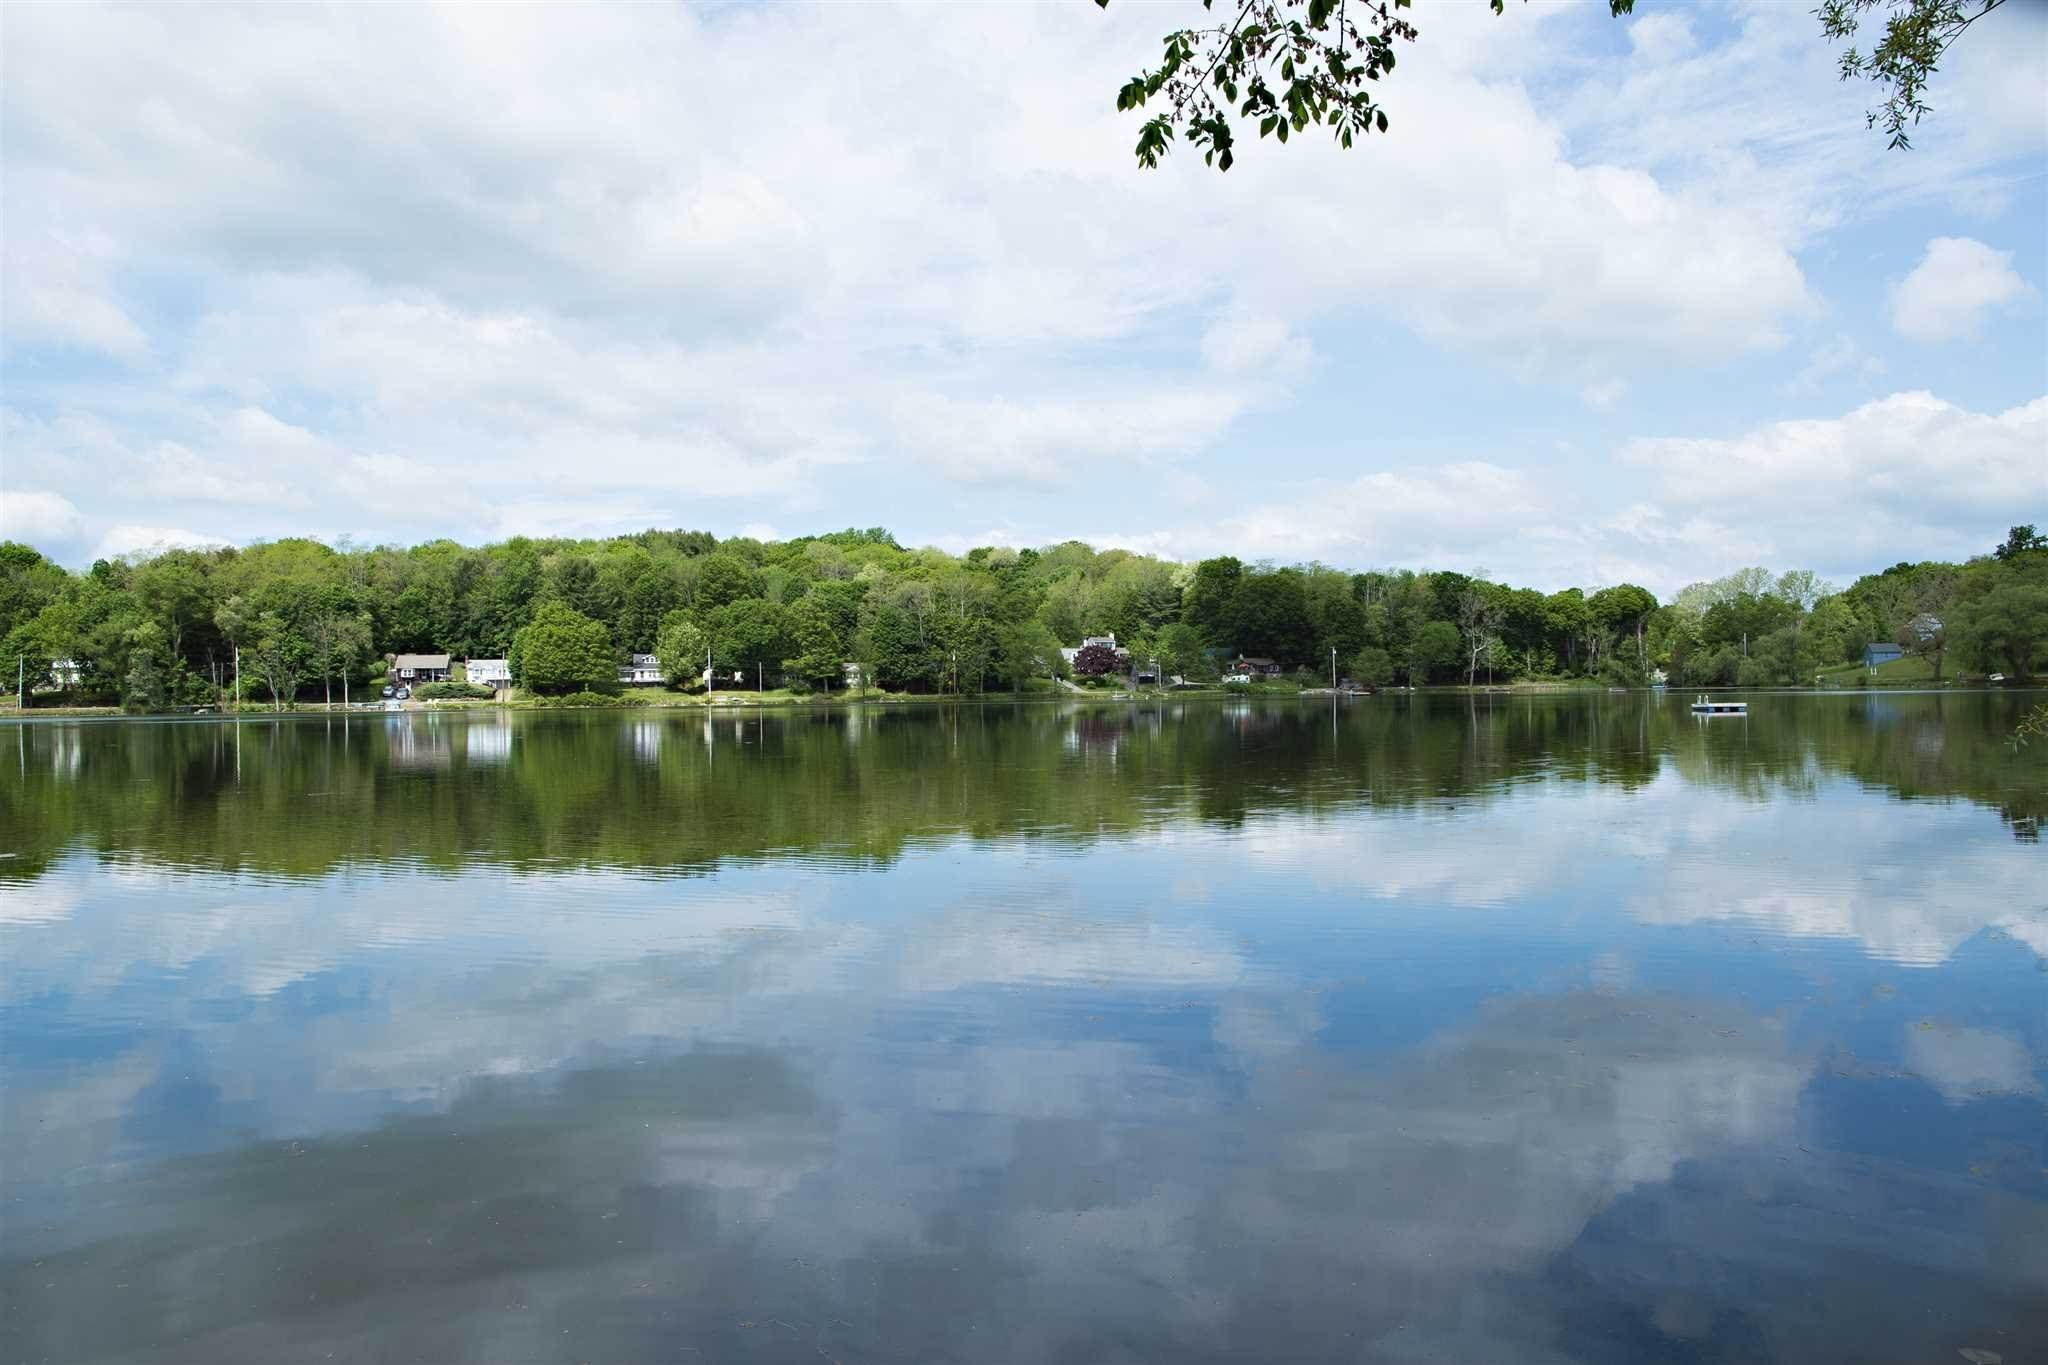 Single Family Homes for Sale at 69 E HUNNS LAKE ROAD Stanfordville, New York 12581 United States